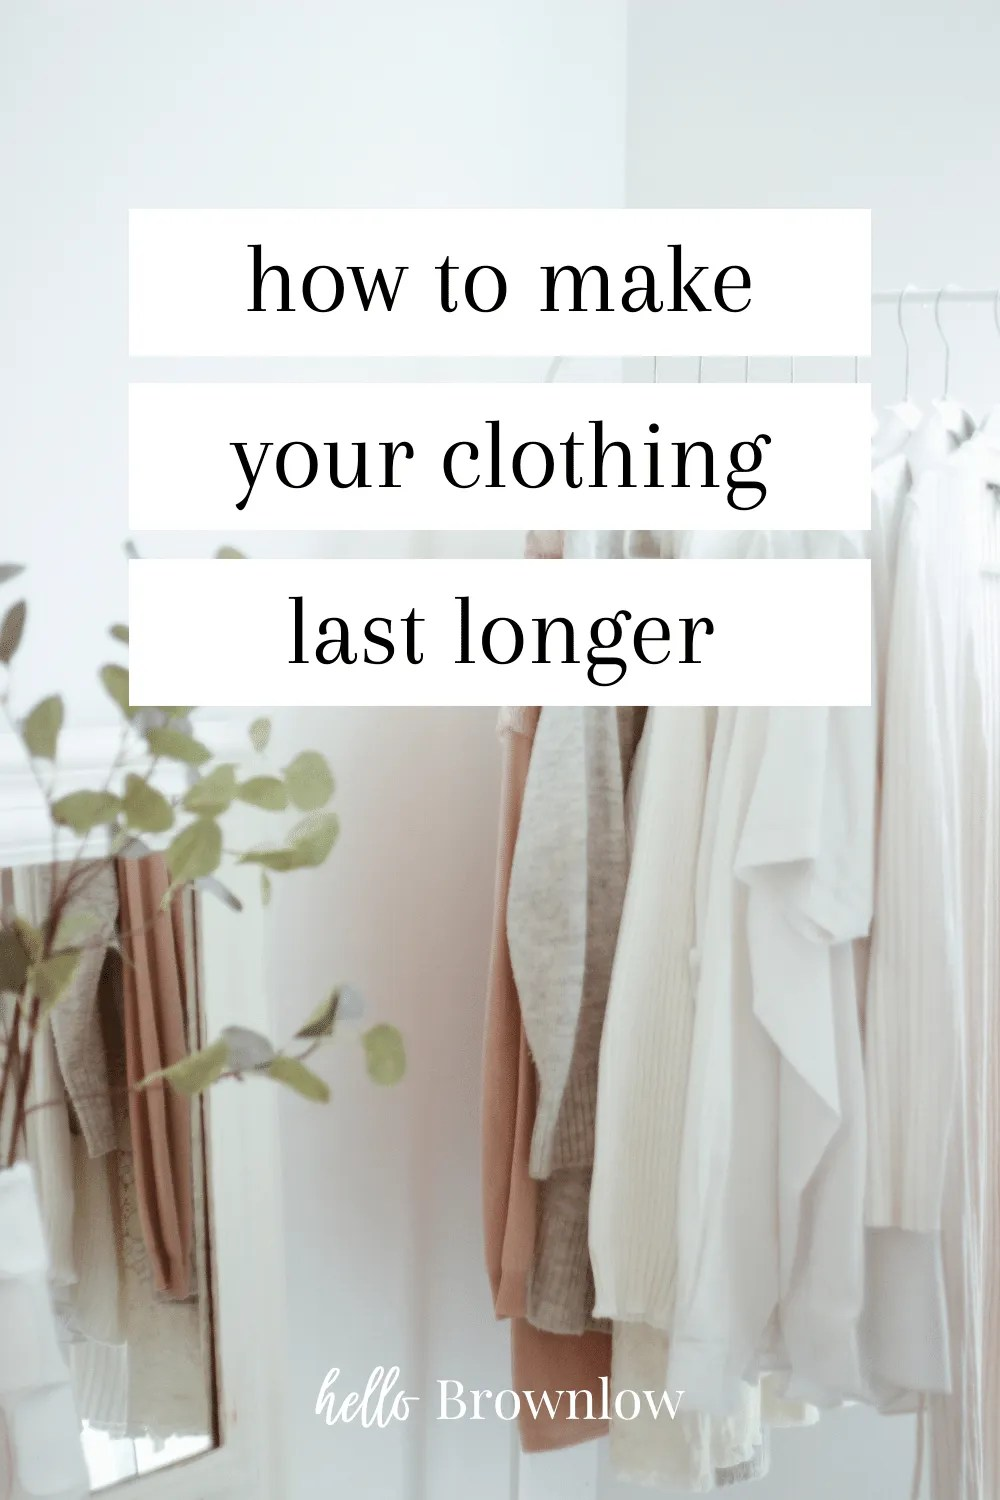 How to Make Your Clothing Last Longer